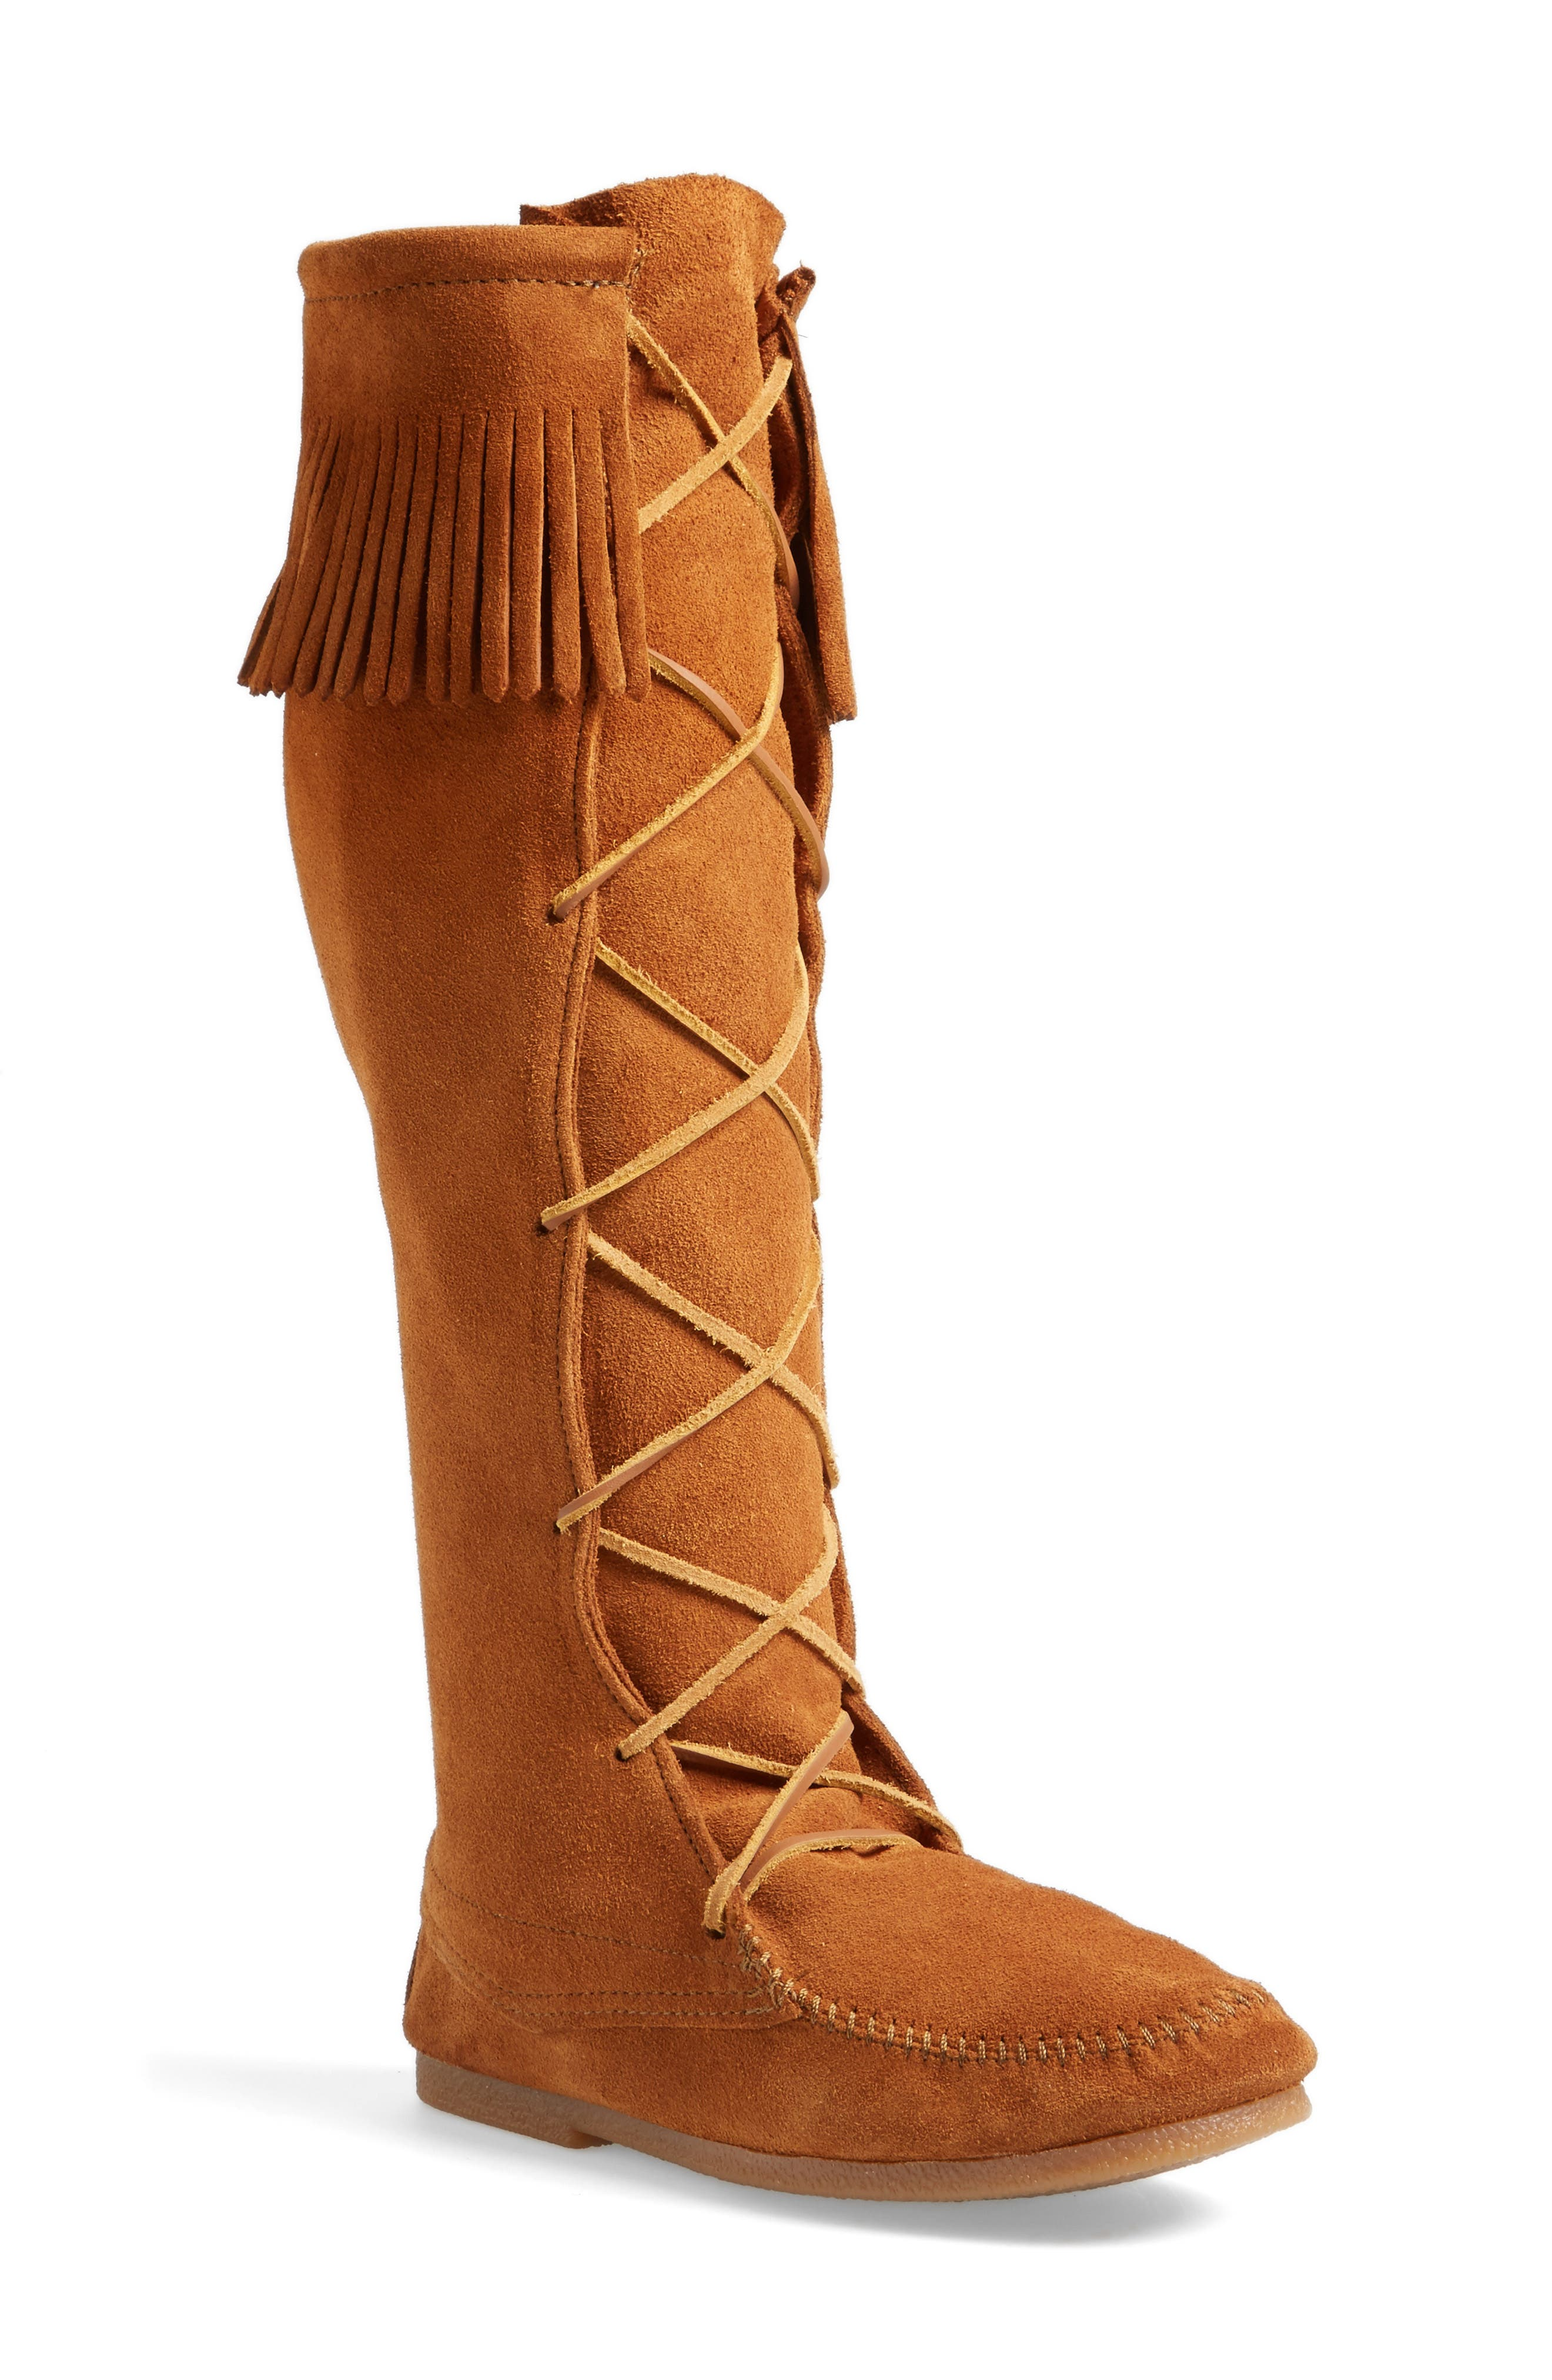 Knee High Moccasin Boot,                             Main thumbnail 1, color,                             Brown Suede